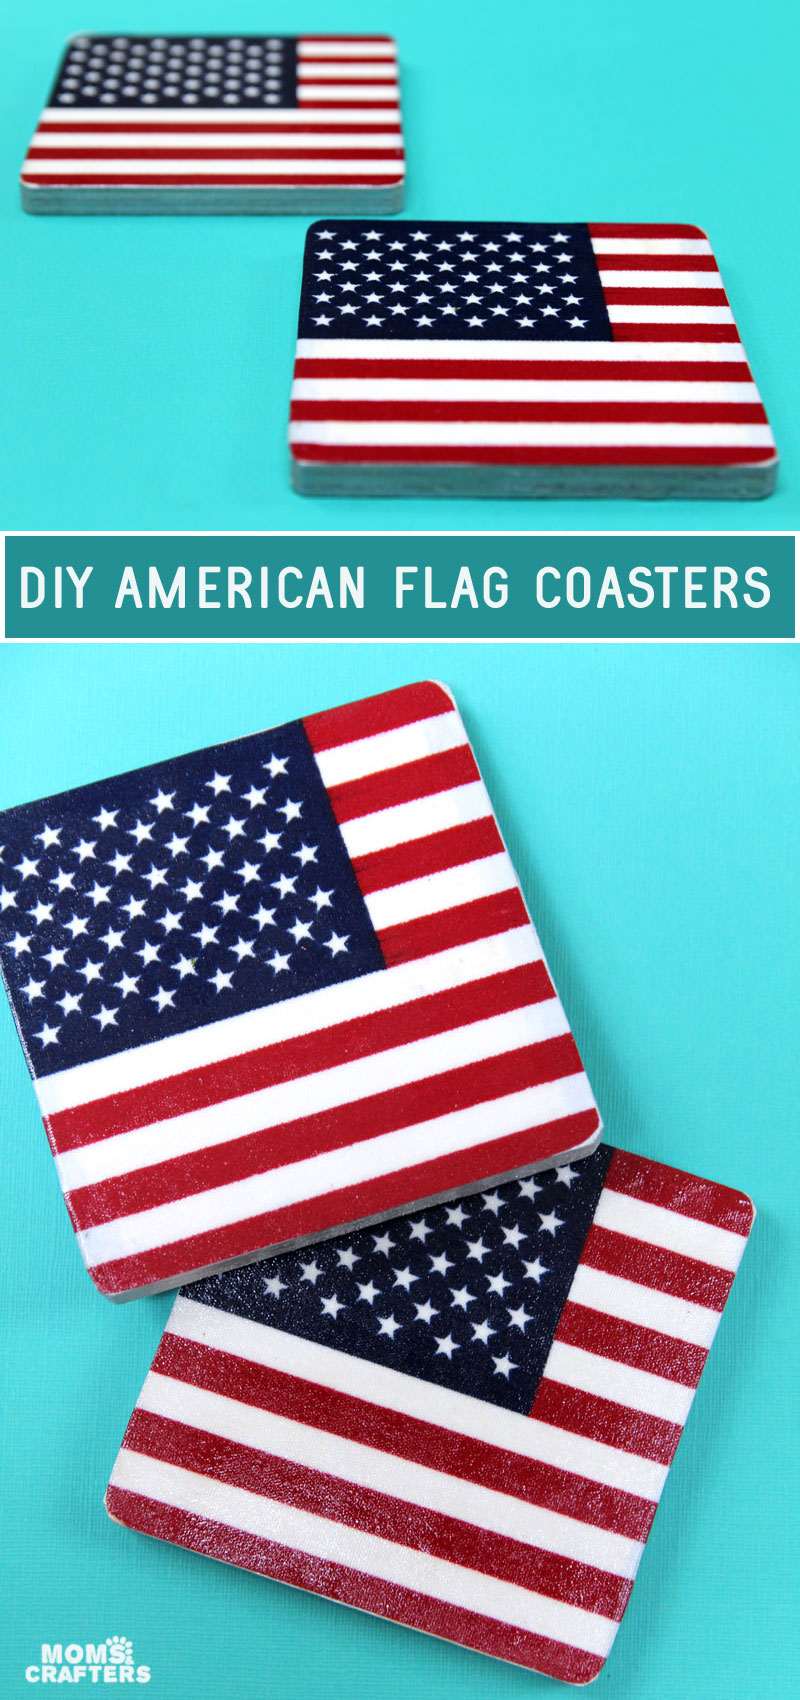 DIY American flag coasters made from parade flags.